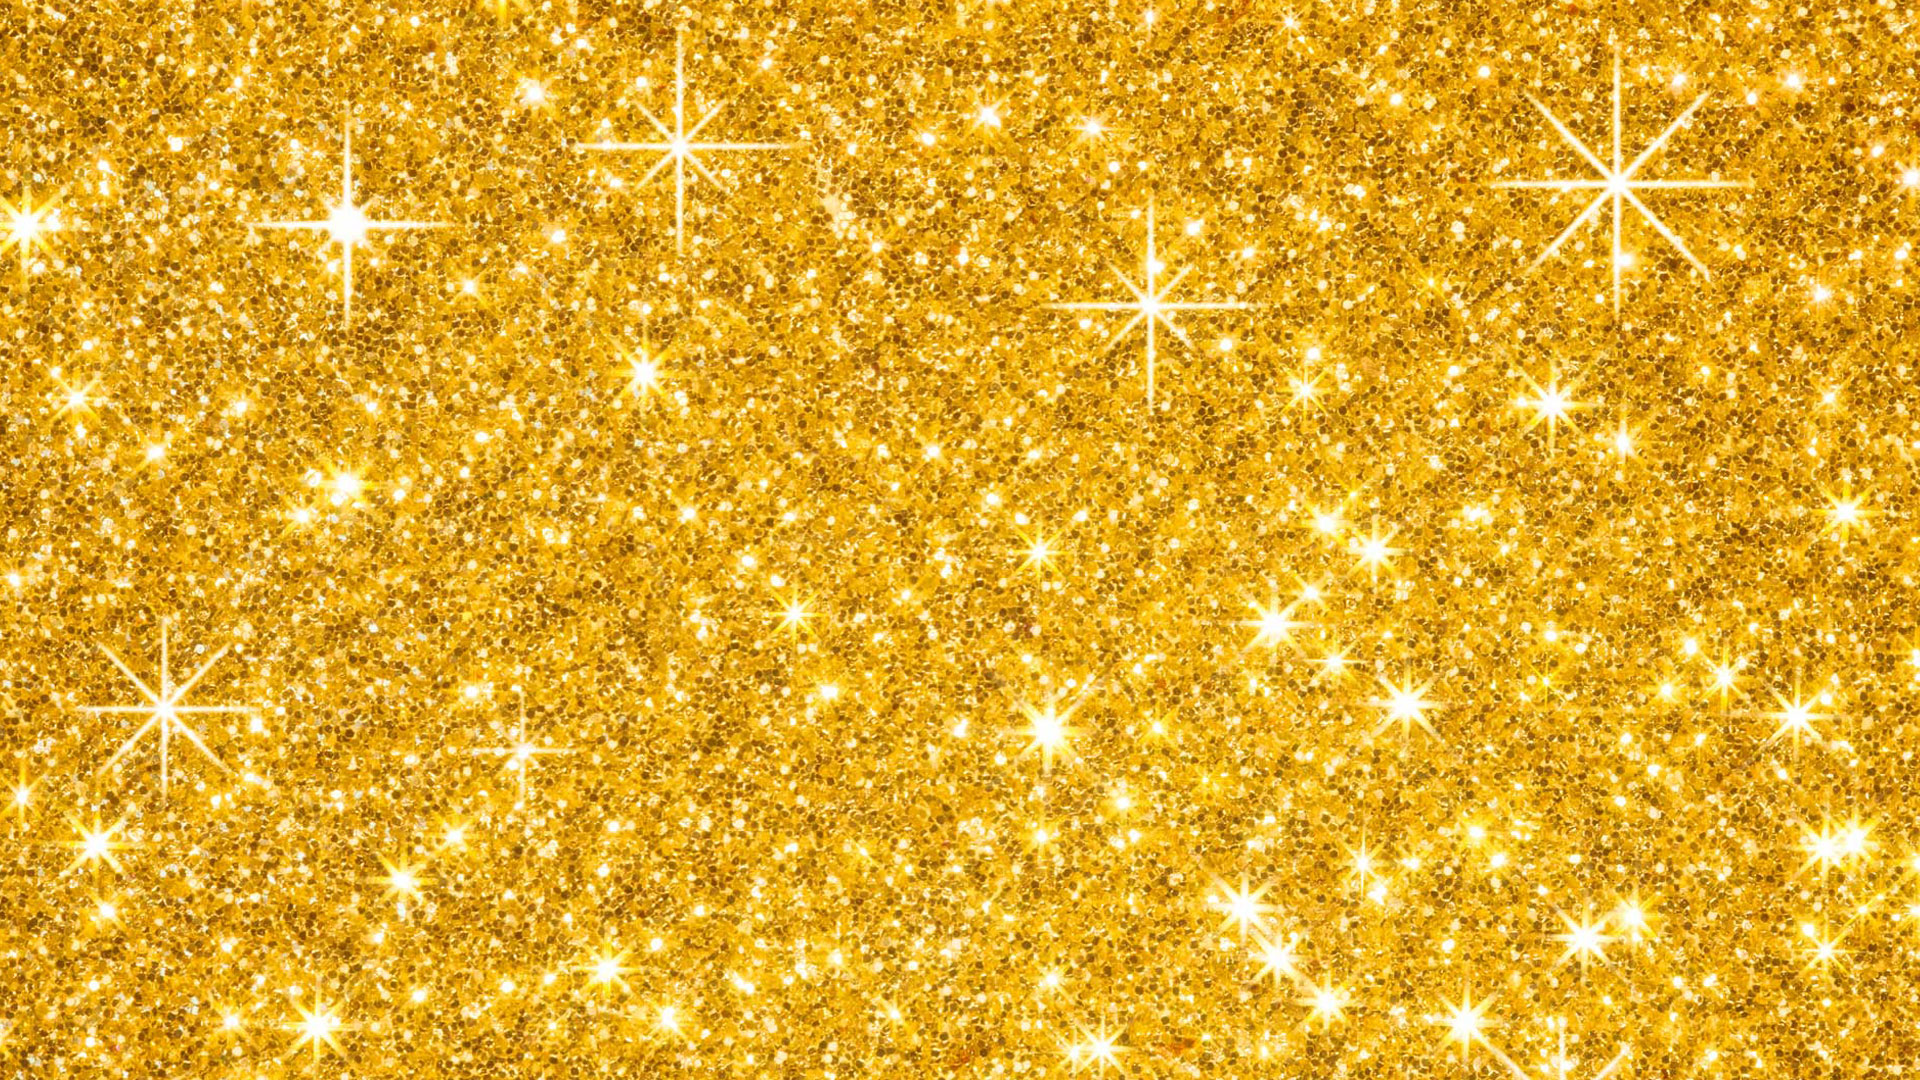 Gold Glitter Wallpaper Hd Page 2 Of 3 Wallpaper Wiki